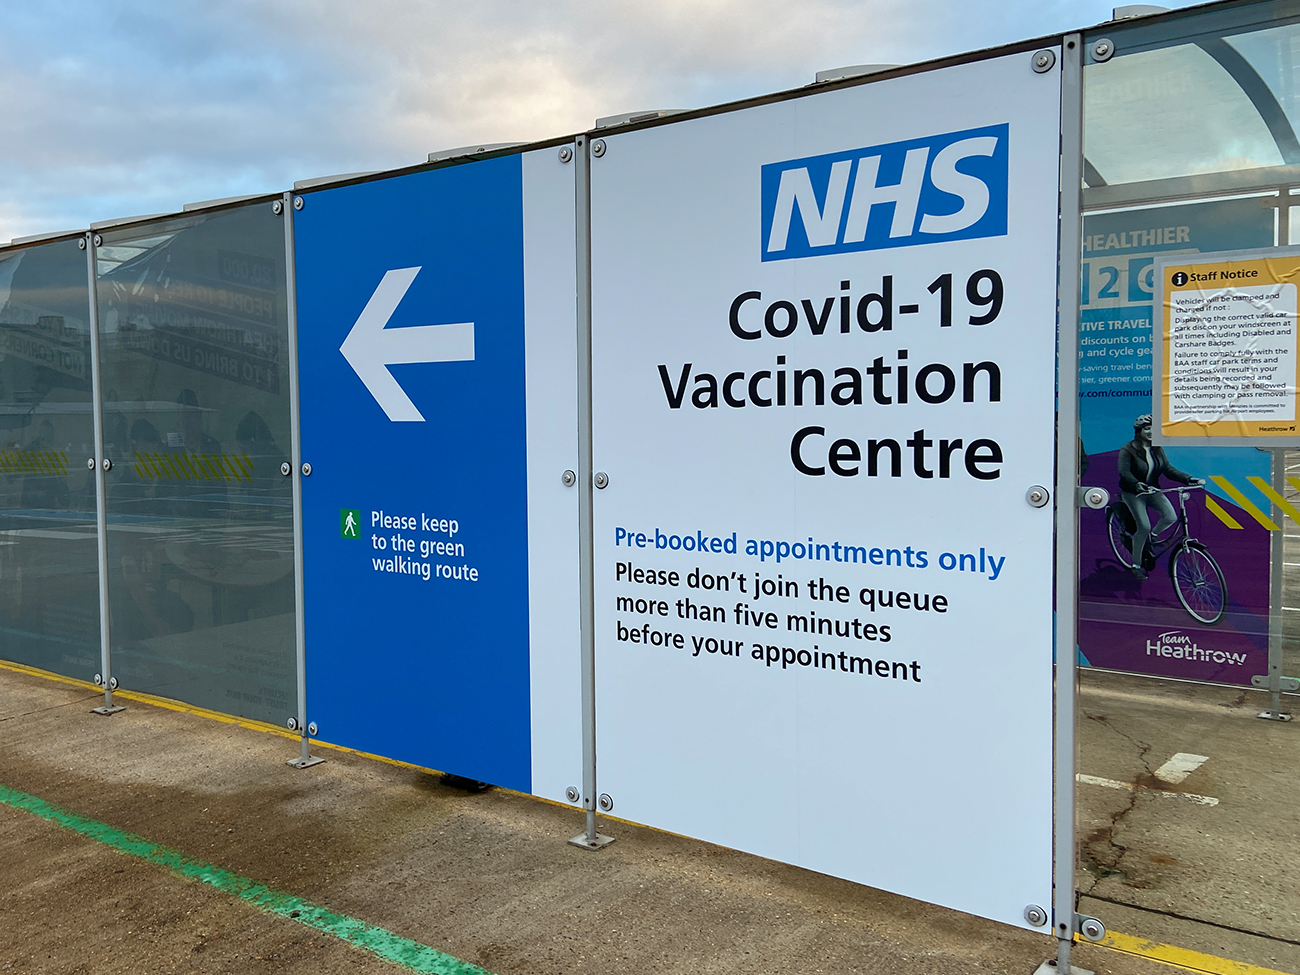 NHS Vaccination Centre Bus Shelter signage